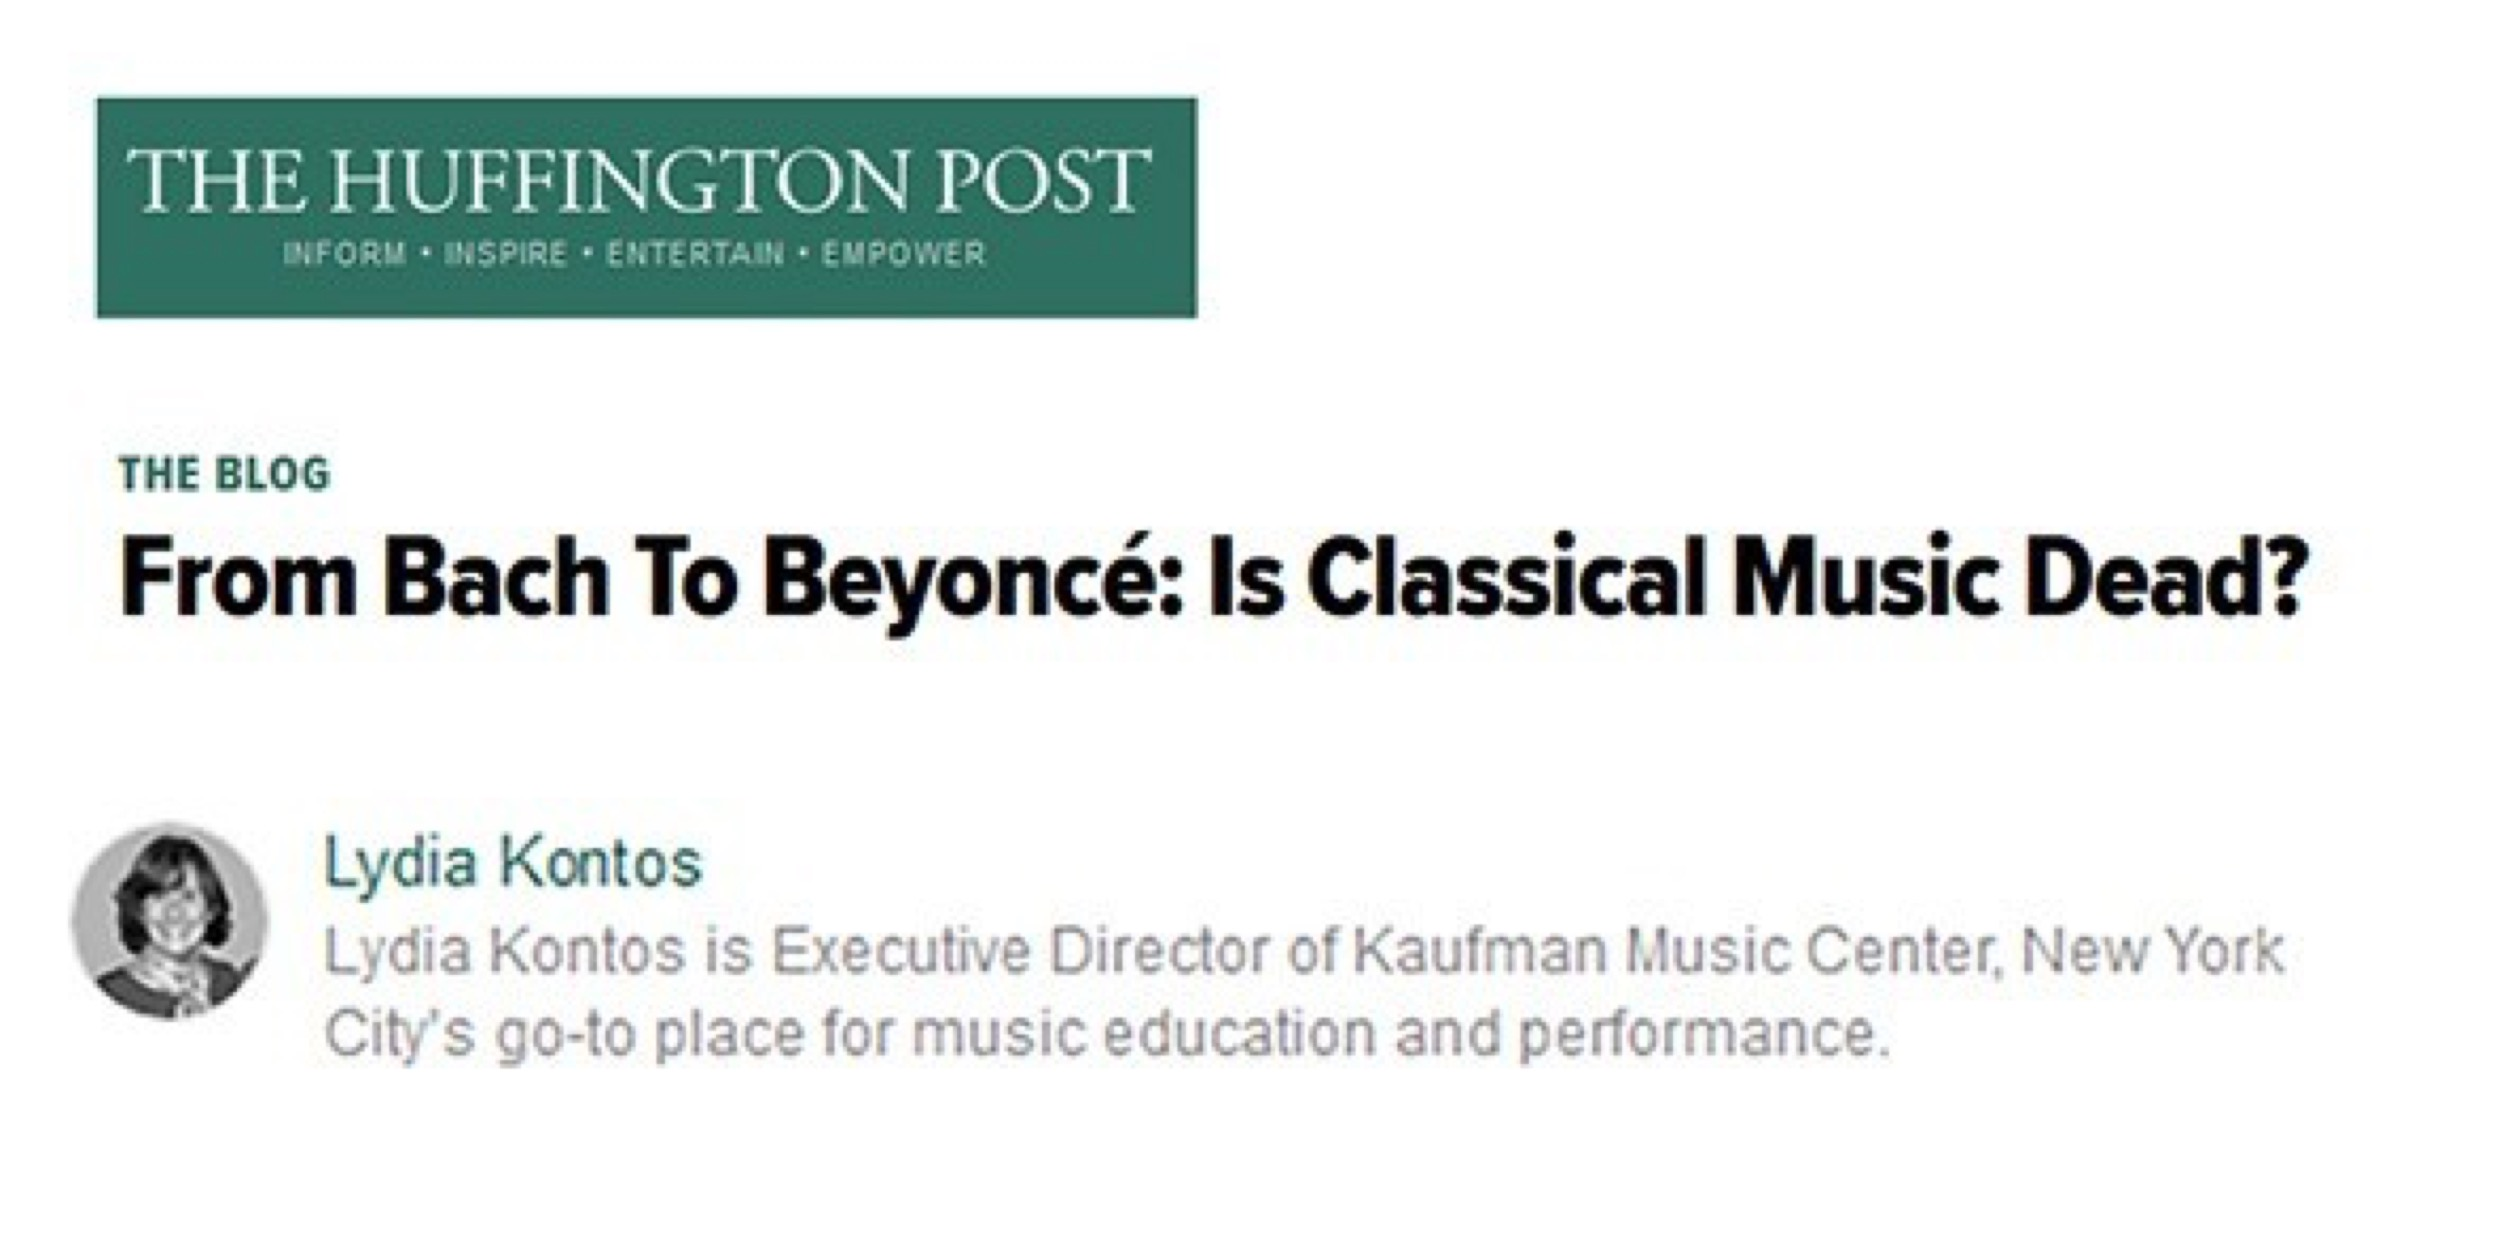 Kaufman's Lydia Kontos Discusses the Future of Classical Music.